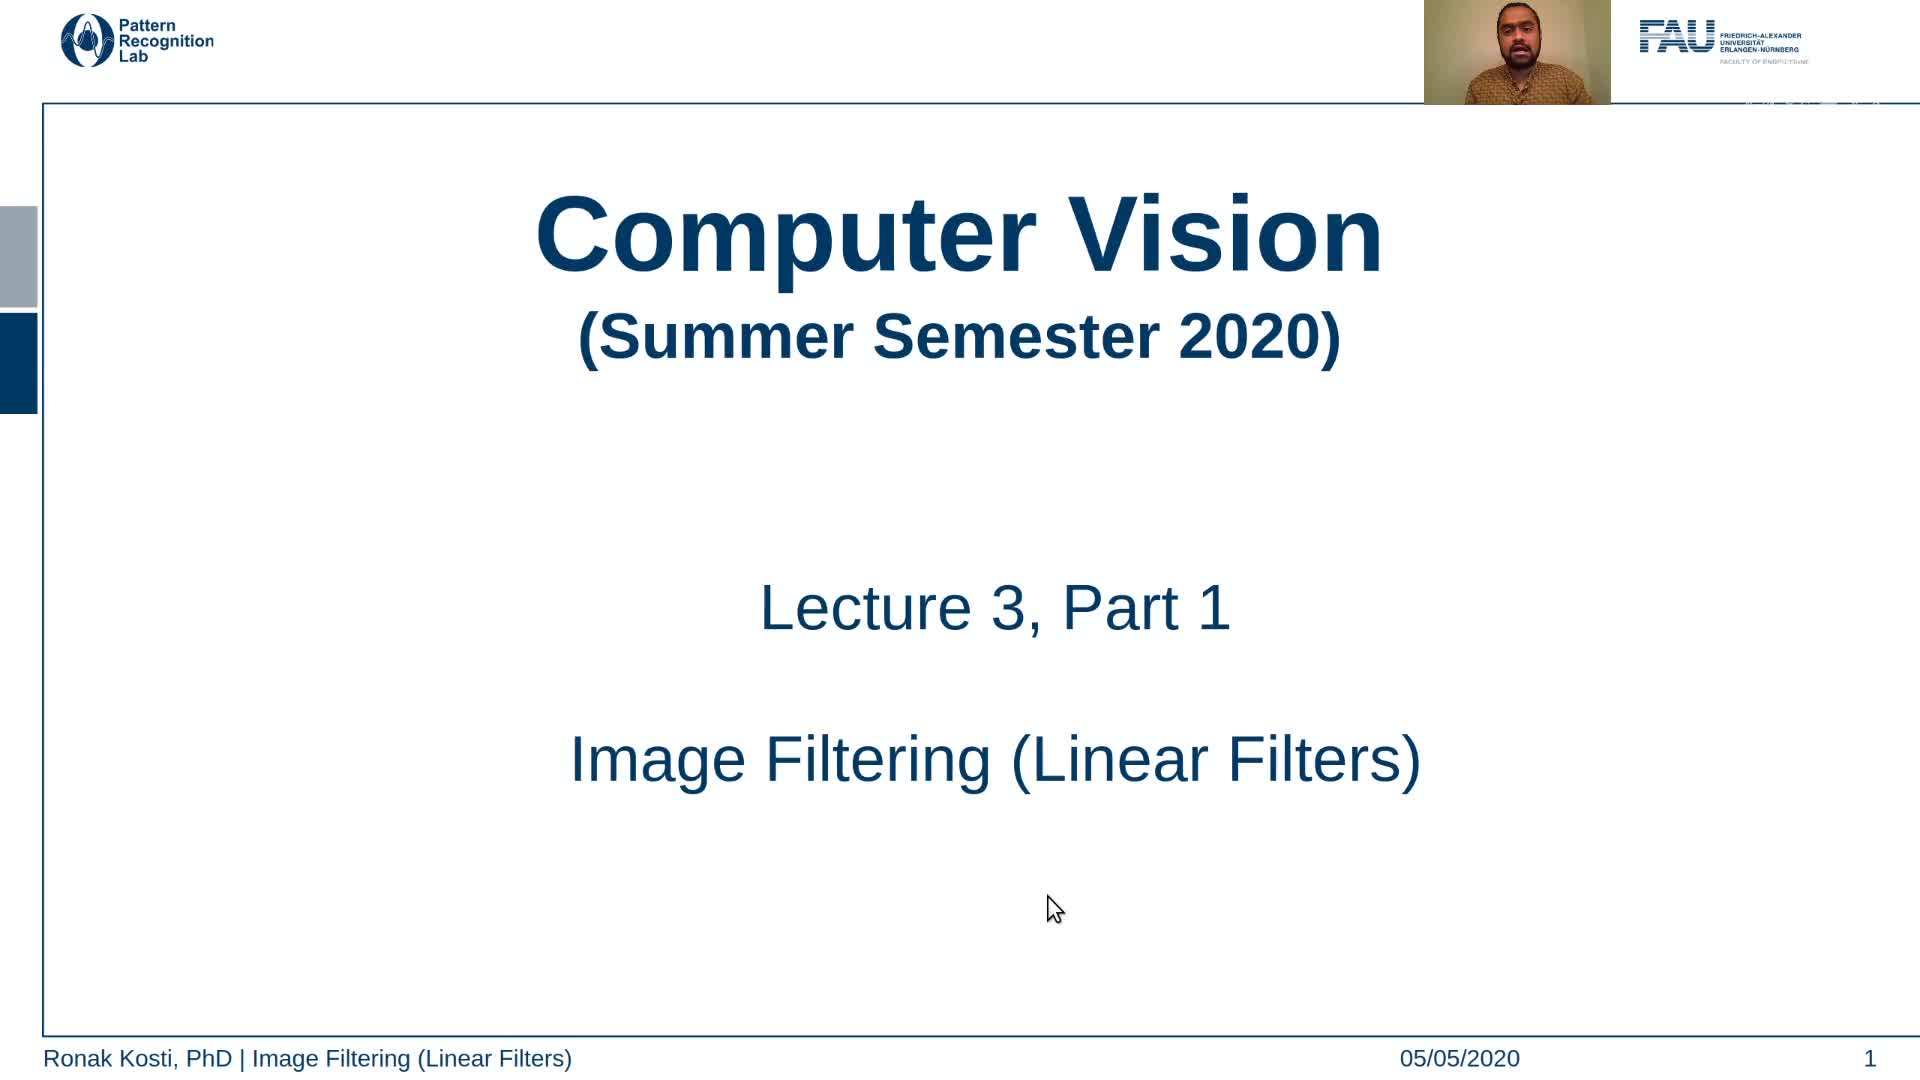 Image Filtering - Linear Filters (Lecture 3, Part 1) preview image